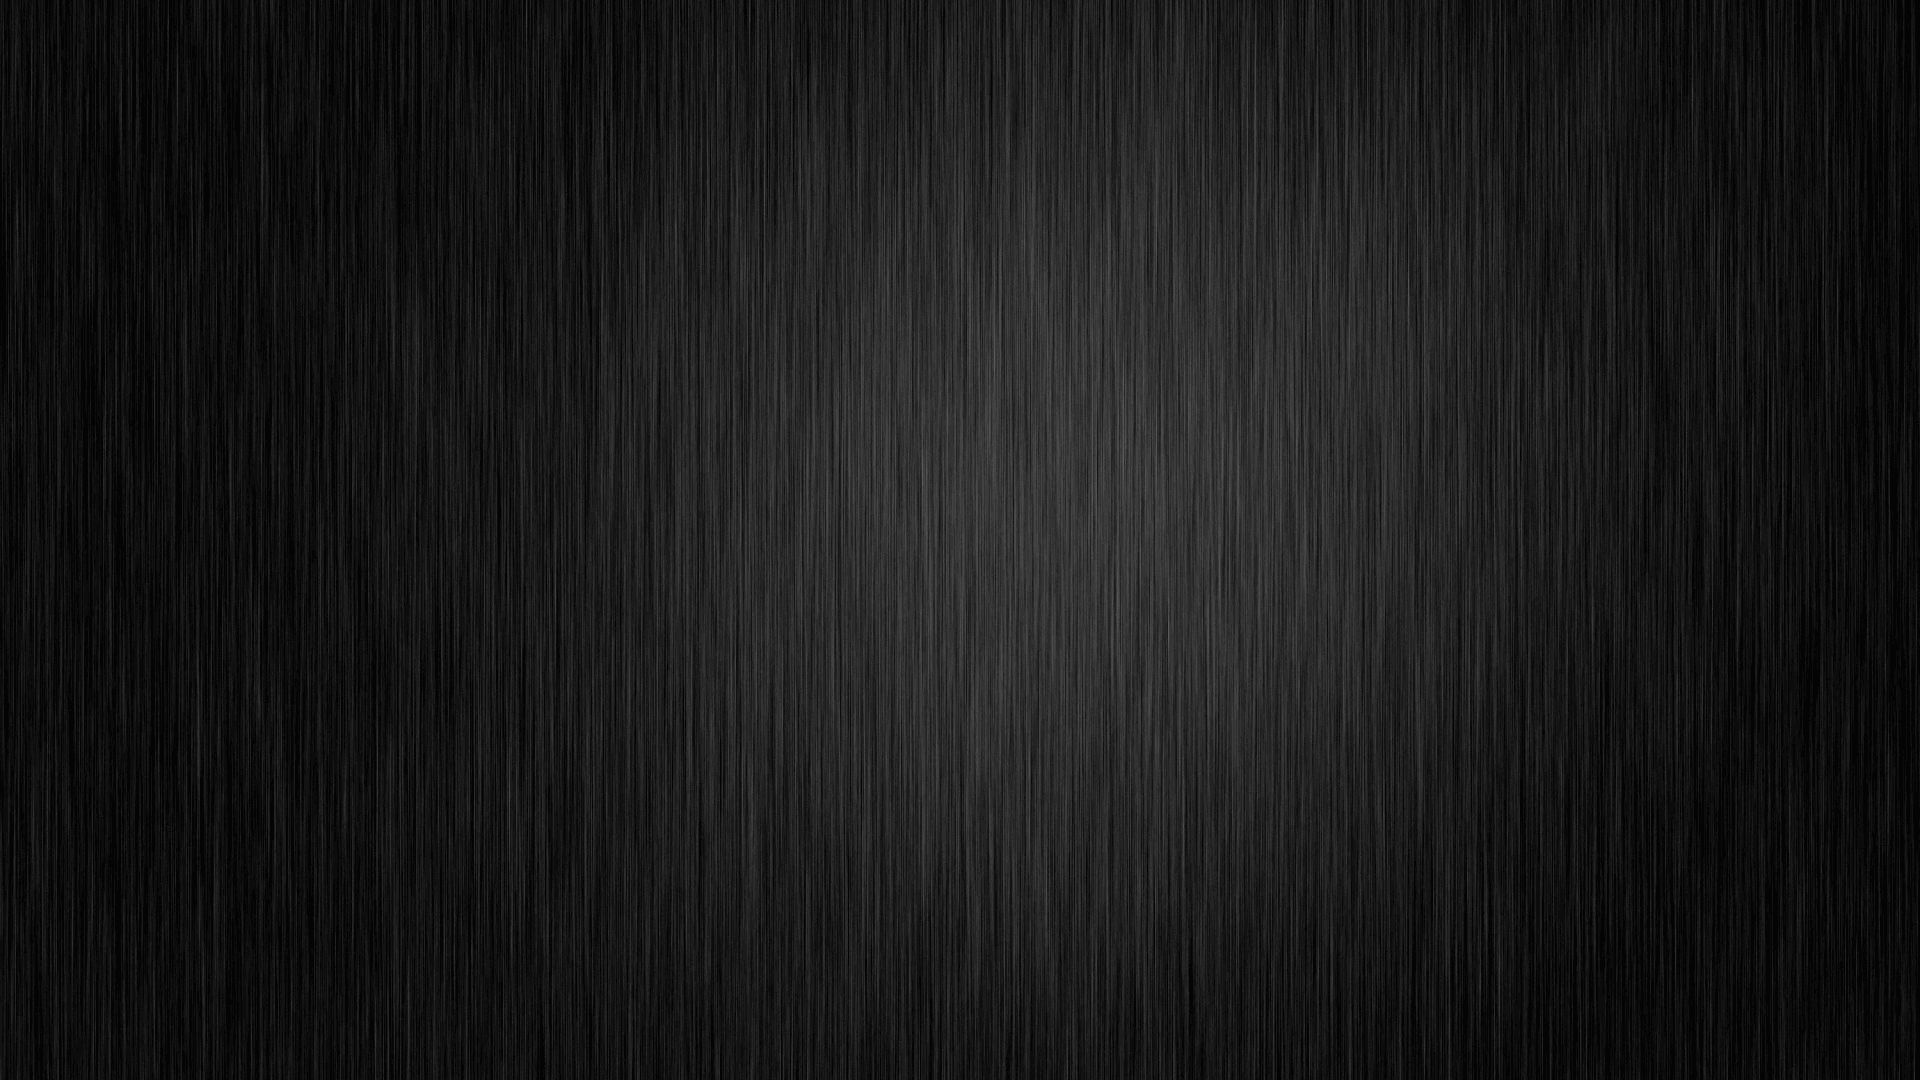 Plain Black hd desktop